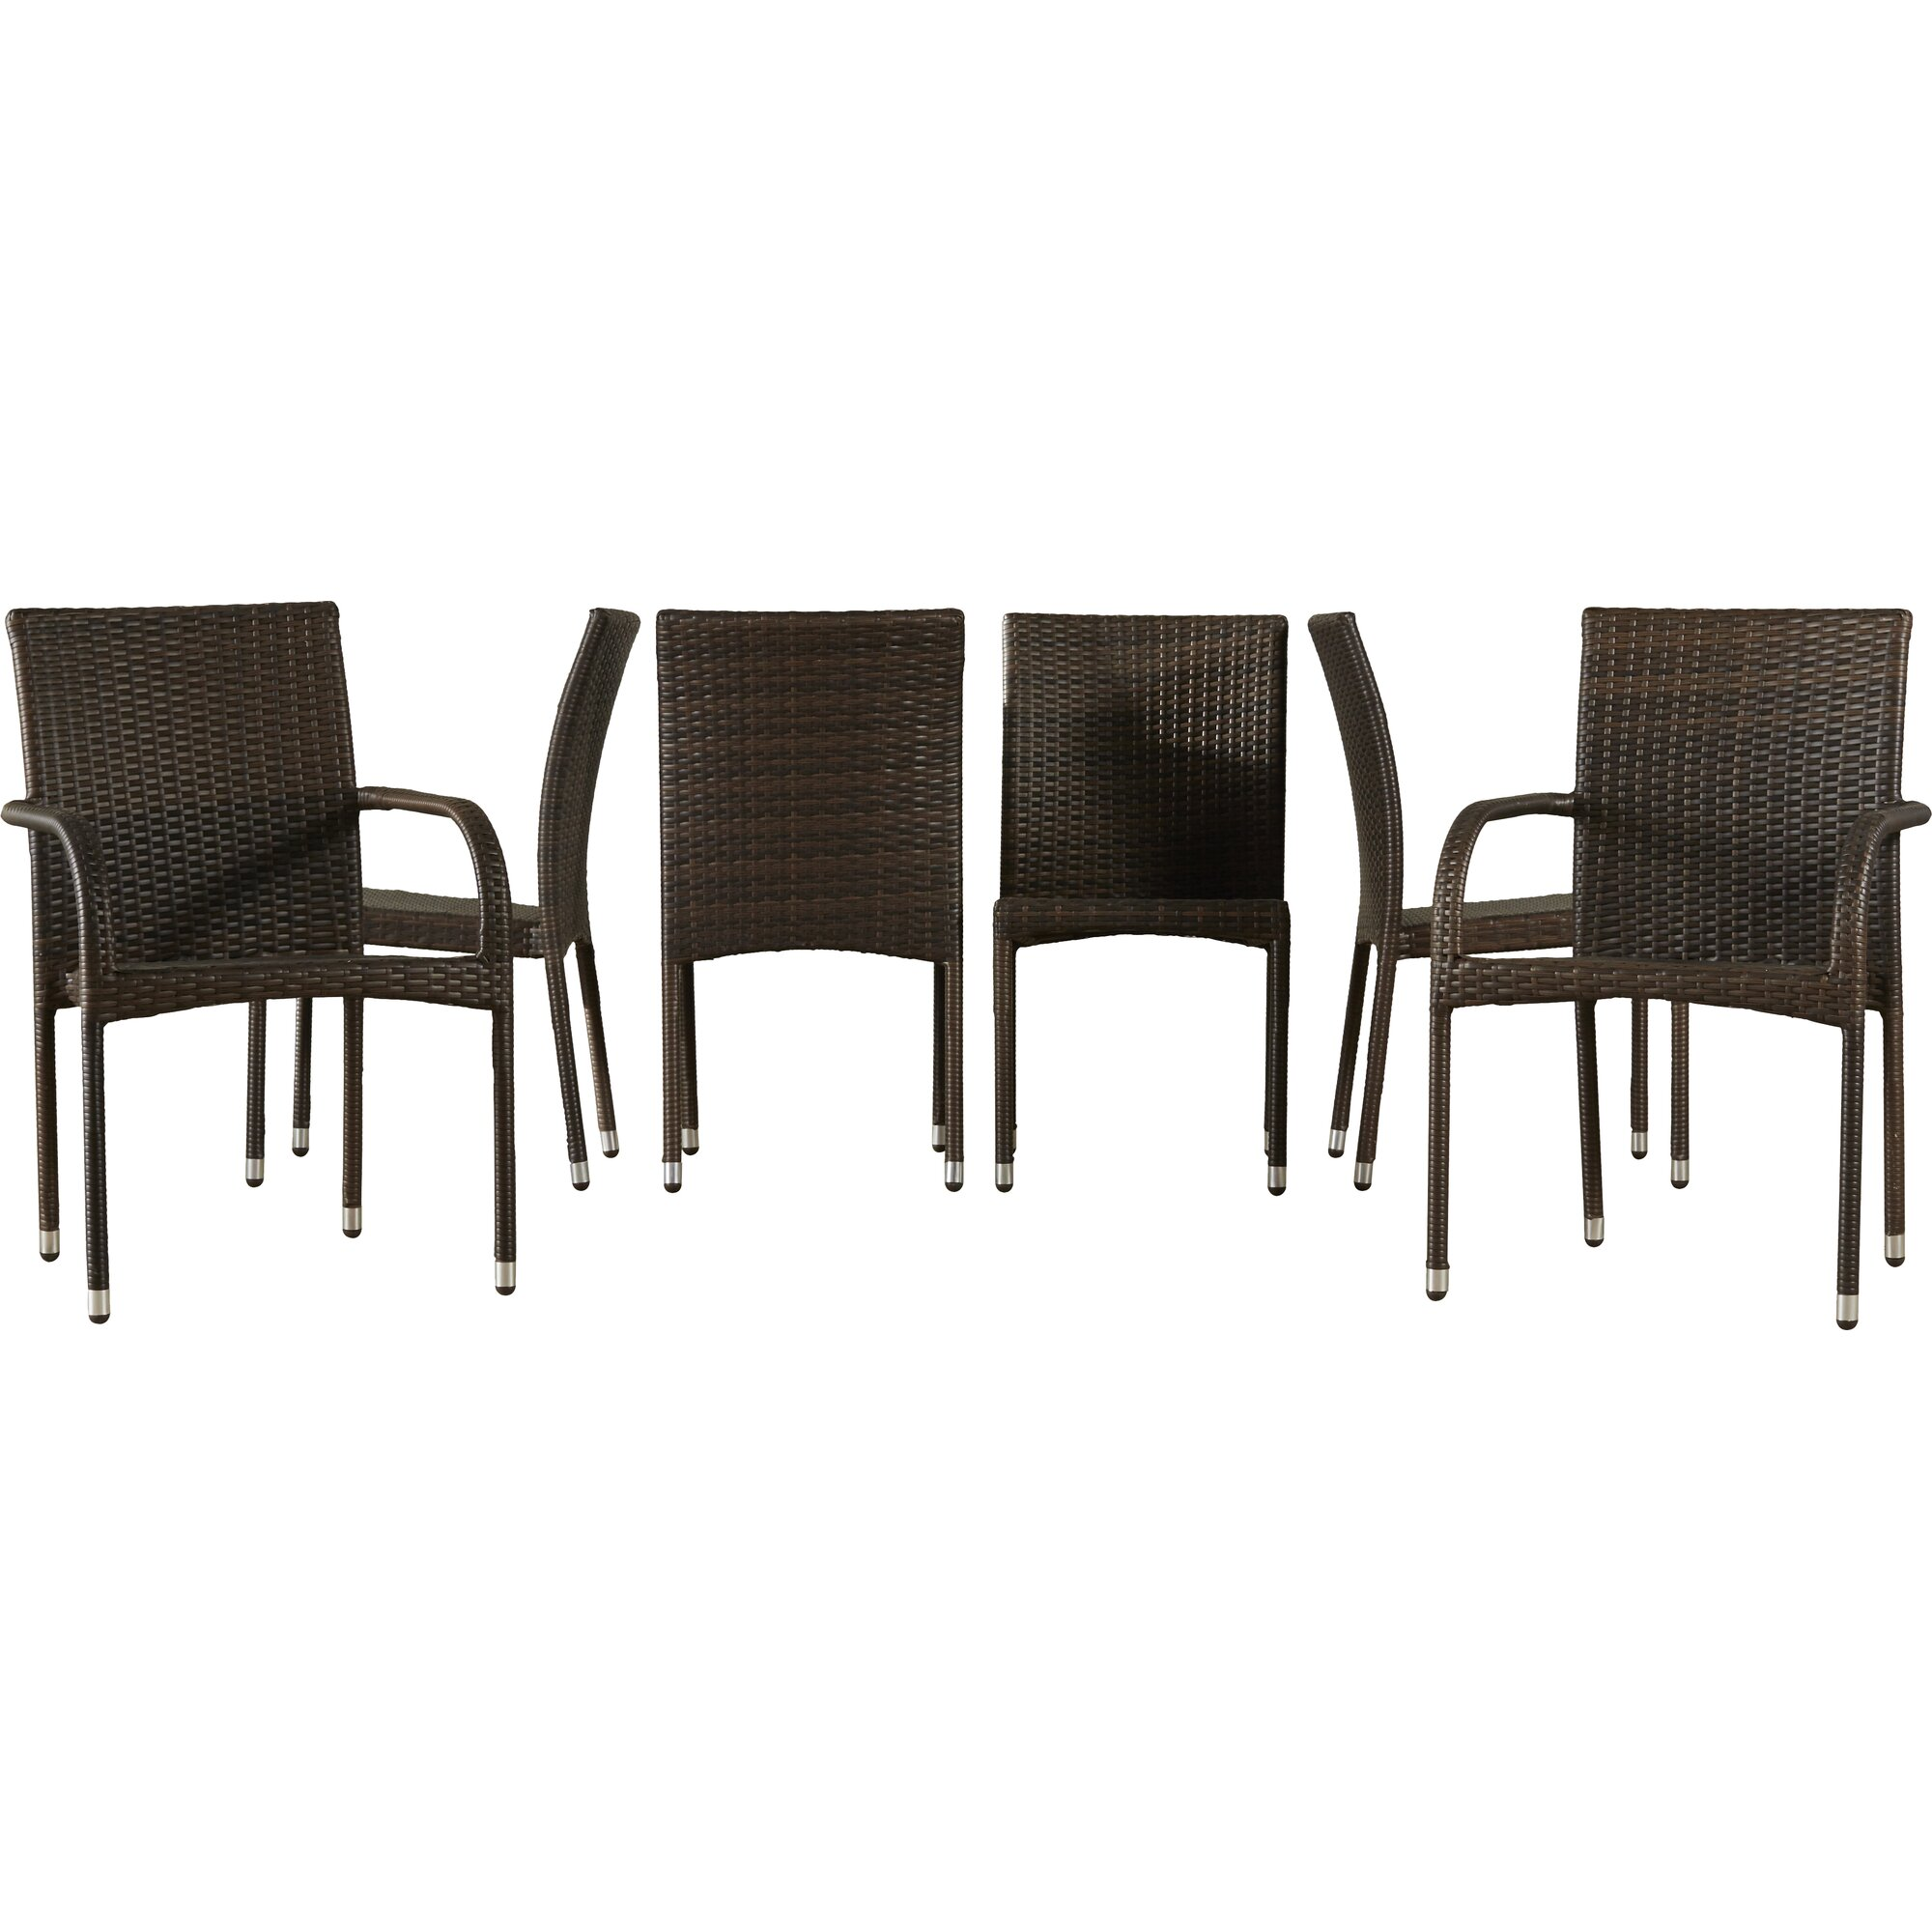 HD wallpapers room essentials 6 piece patio dining set